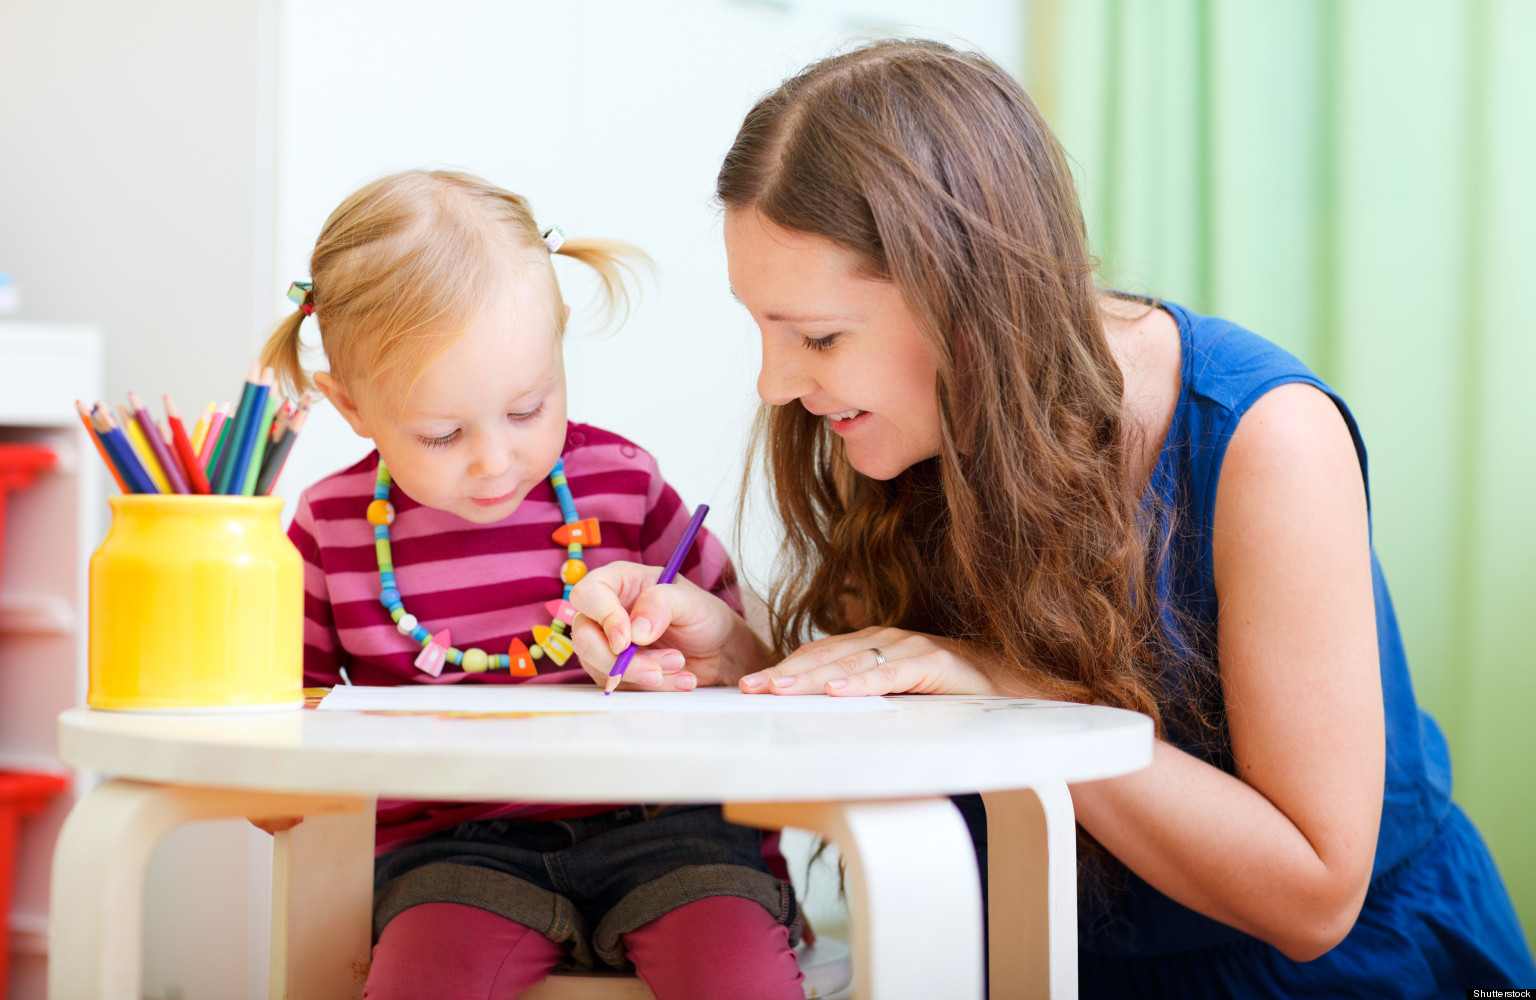 Babysitter Lessons & Safety Training: B.L.A.S.T. Messalonskee W19